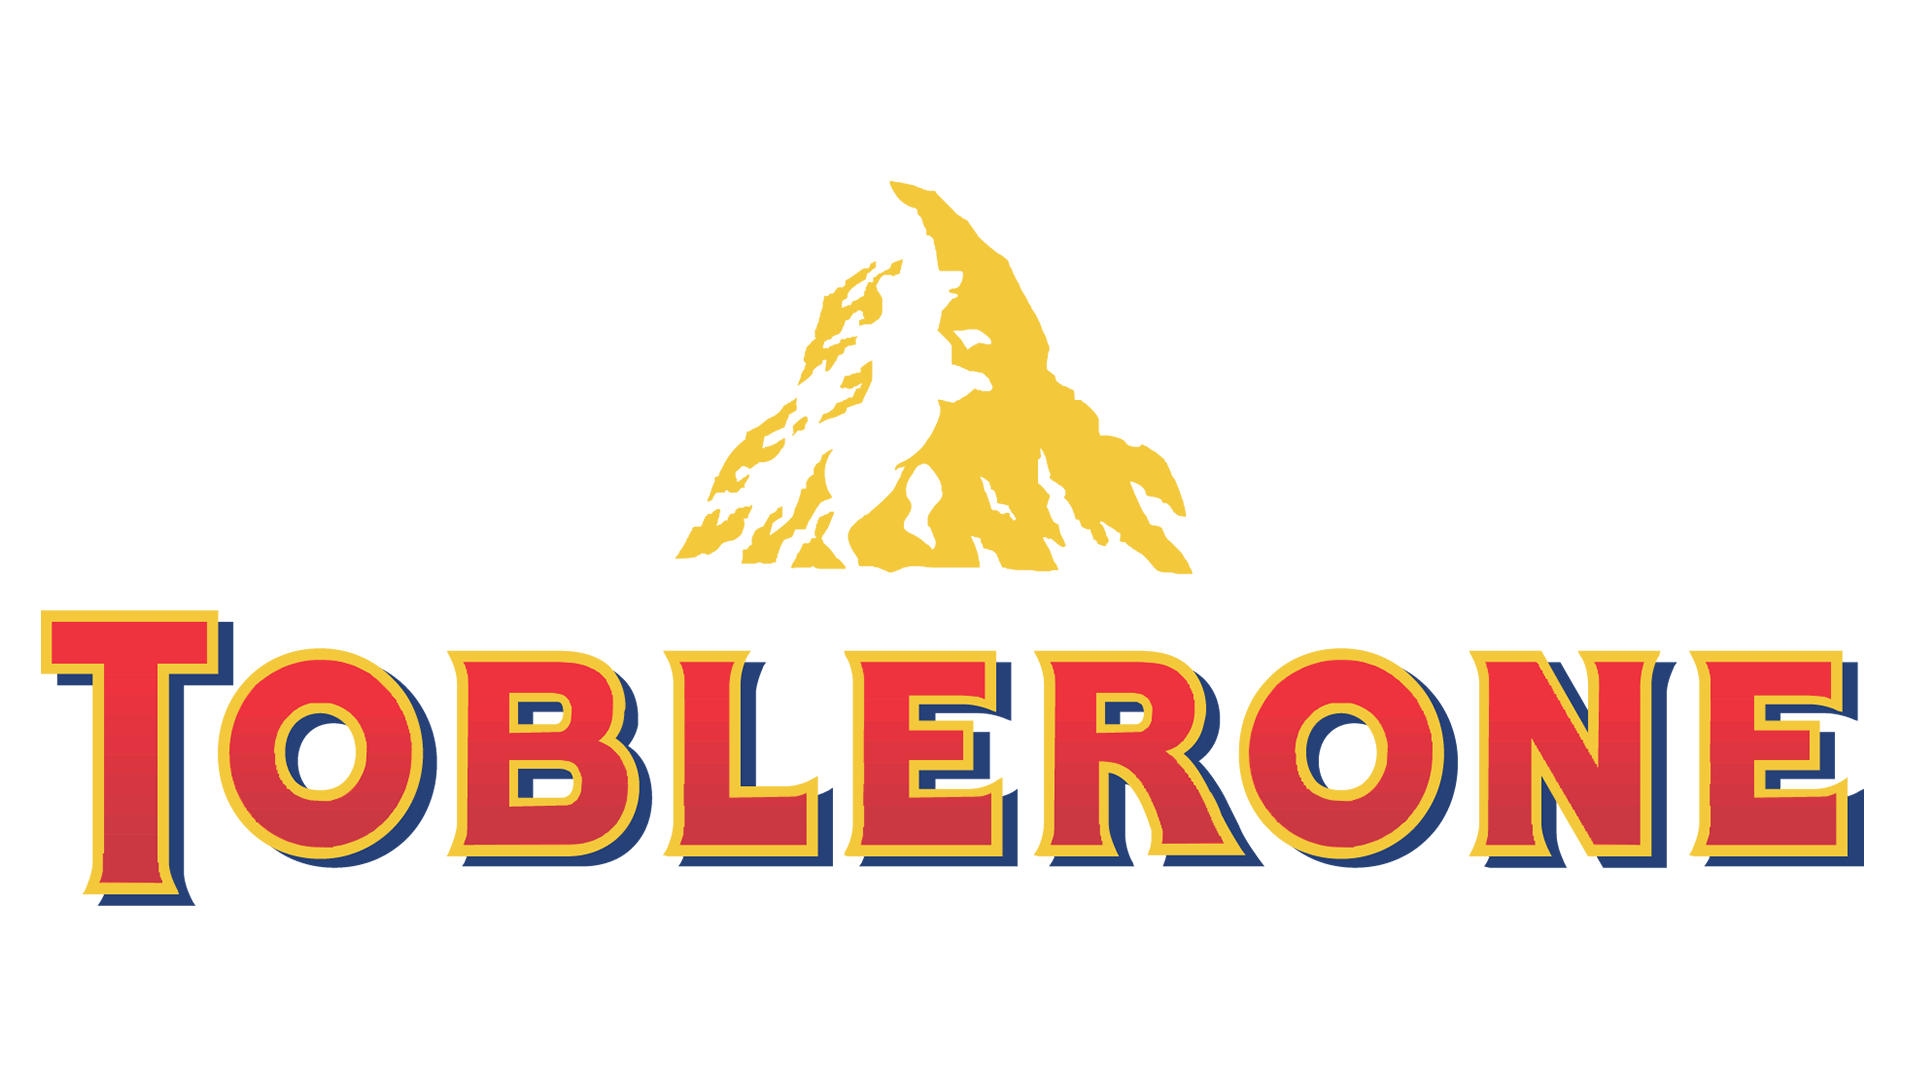 Toblerone logo and symbol, meaning, history, PNG